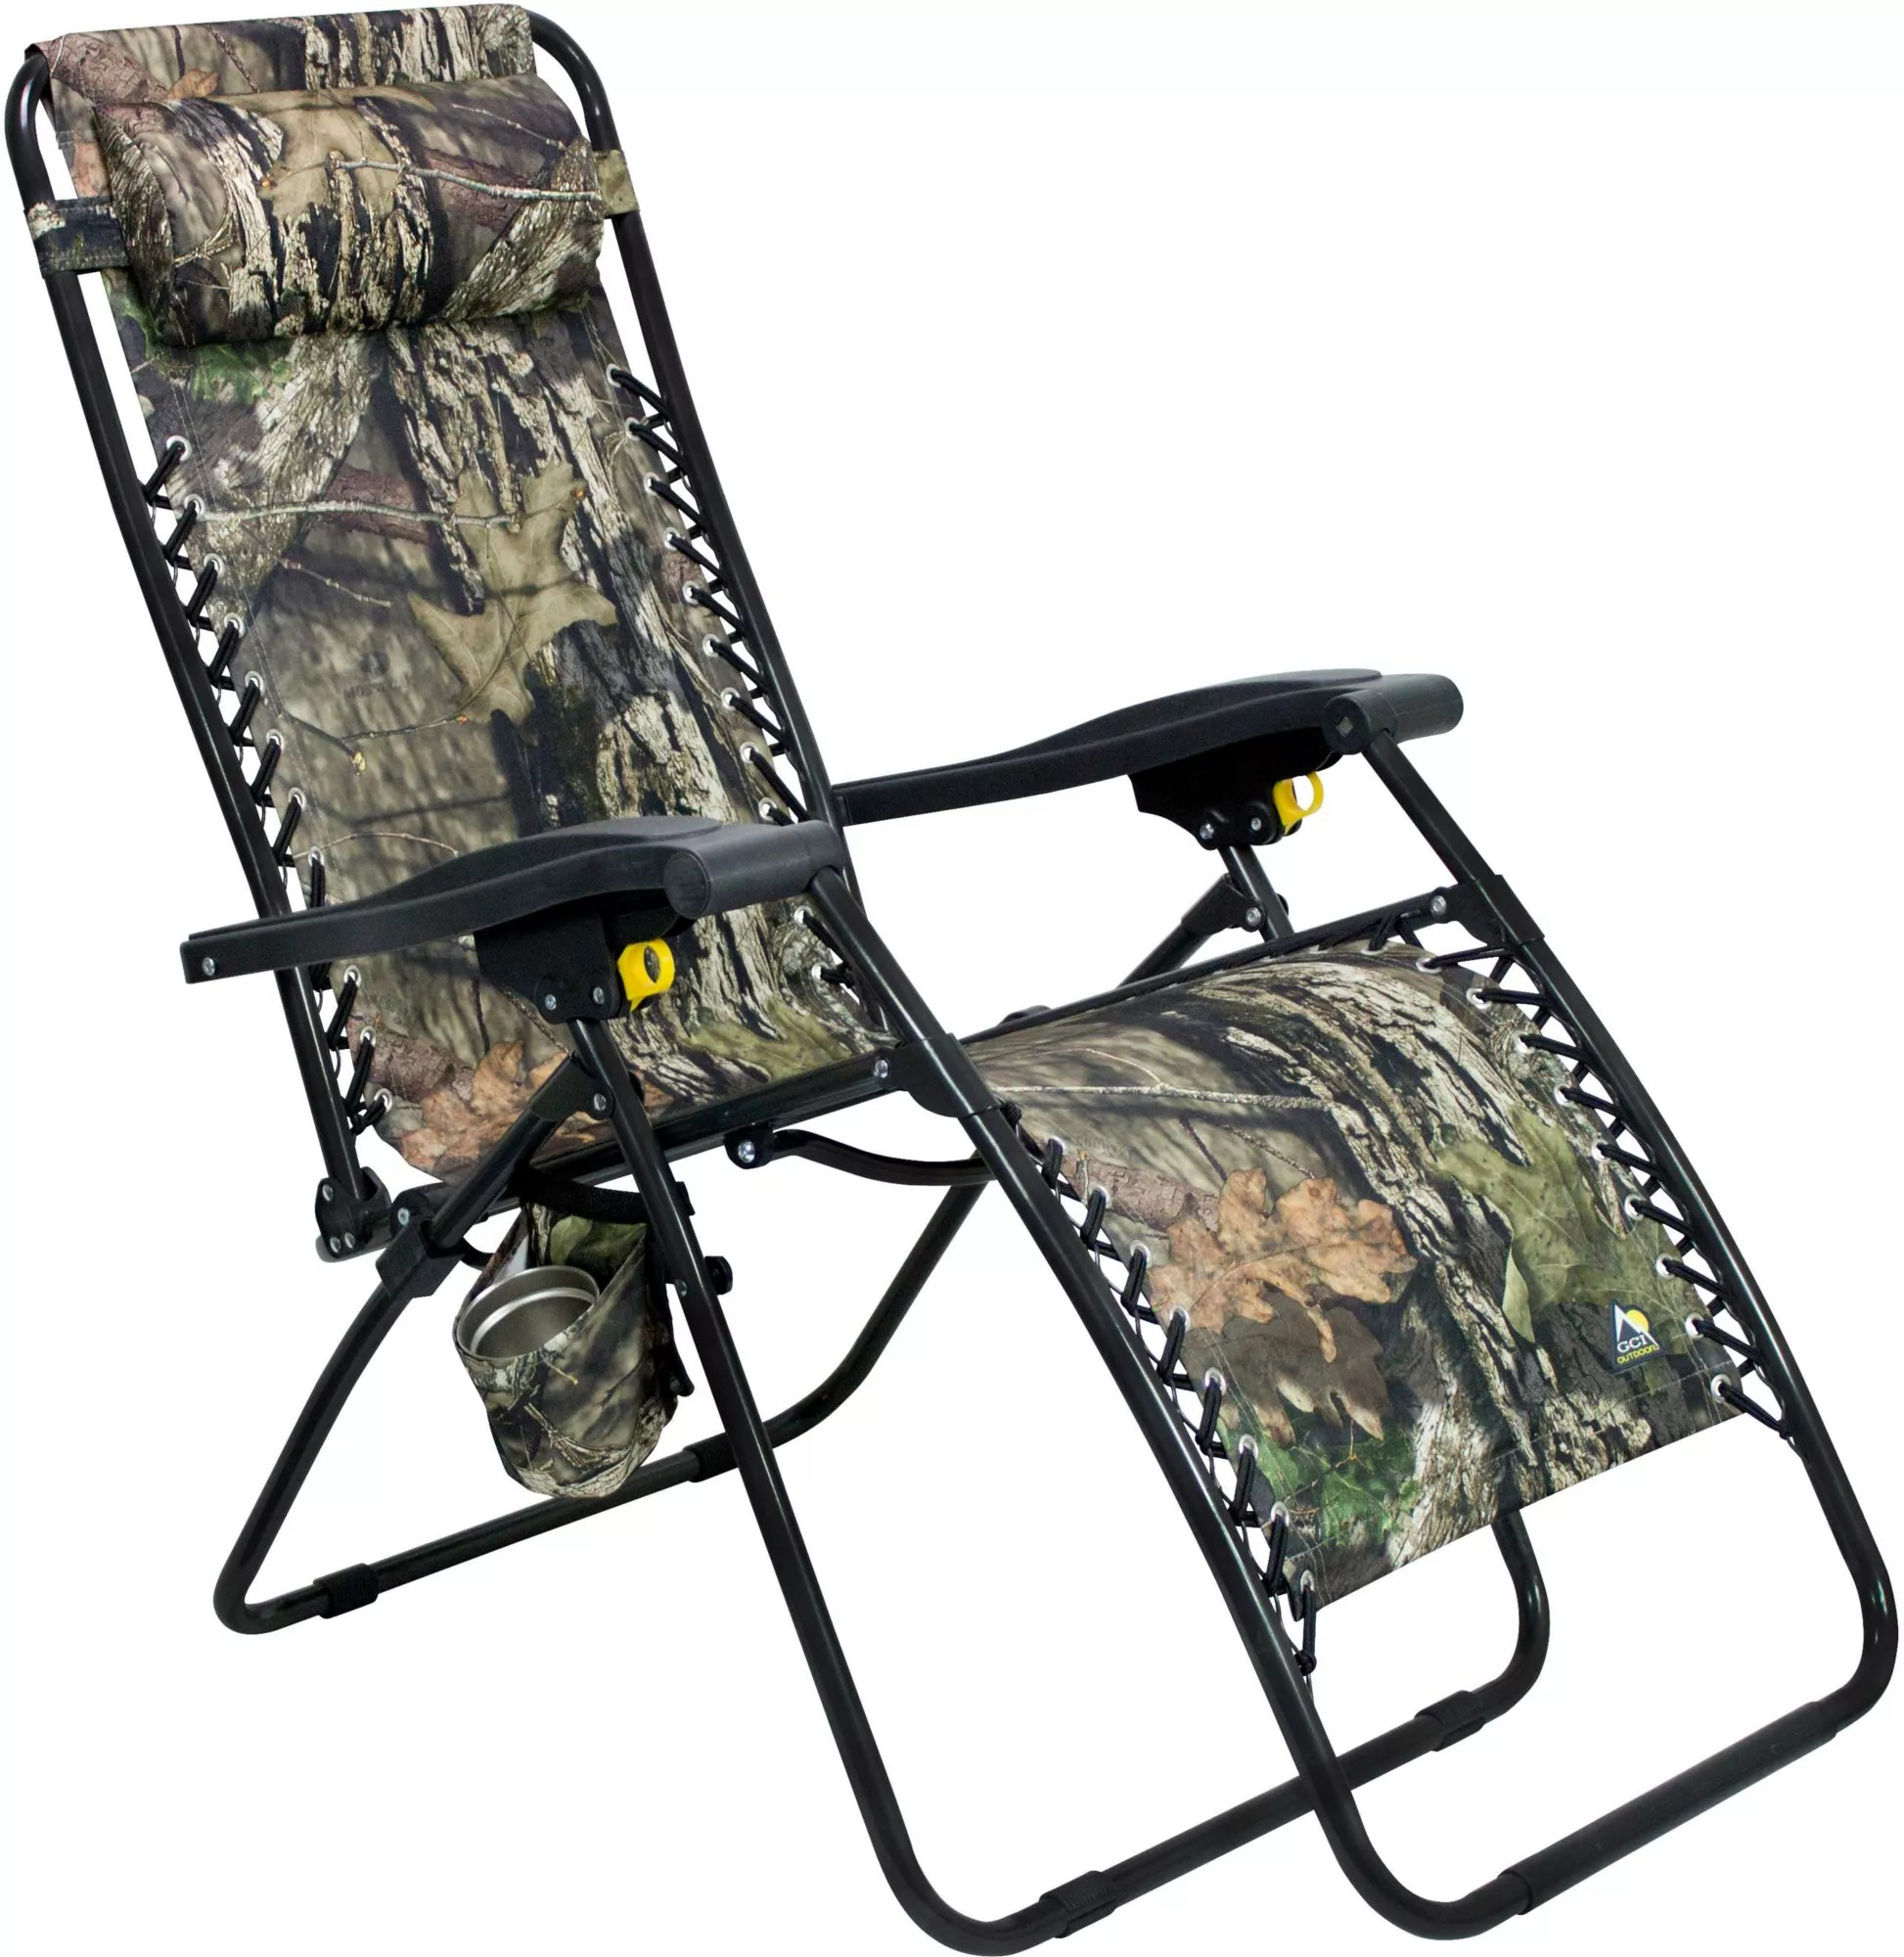 zero gravity chair clearance kitchen table with bench and chairs best price guarantee at dick s product image gci outdoor mossy oak